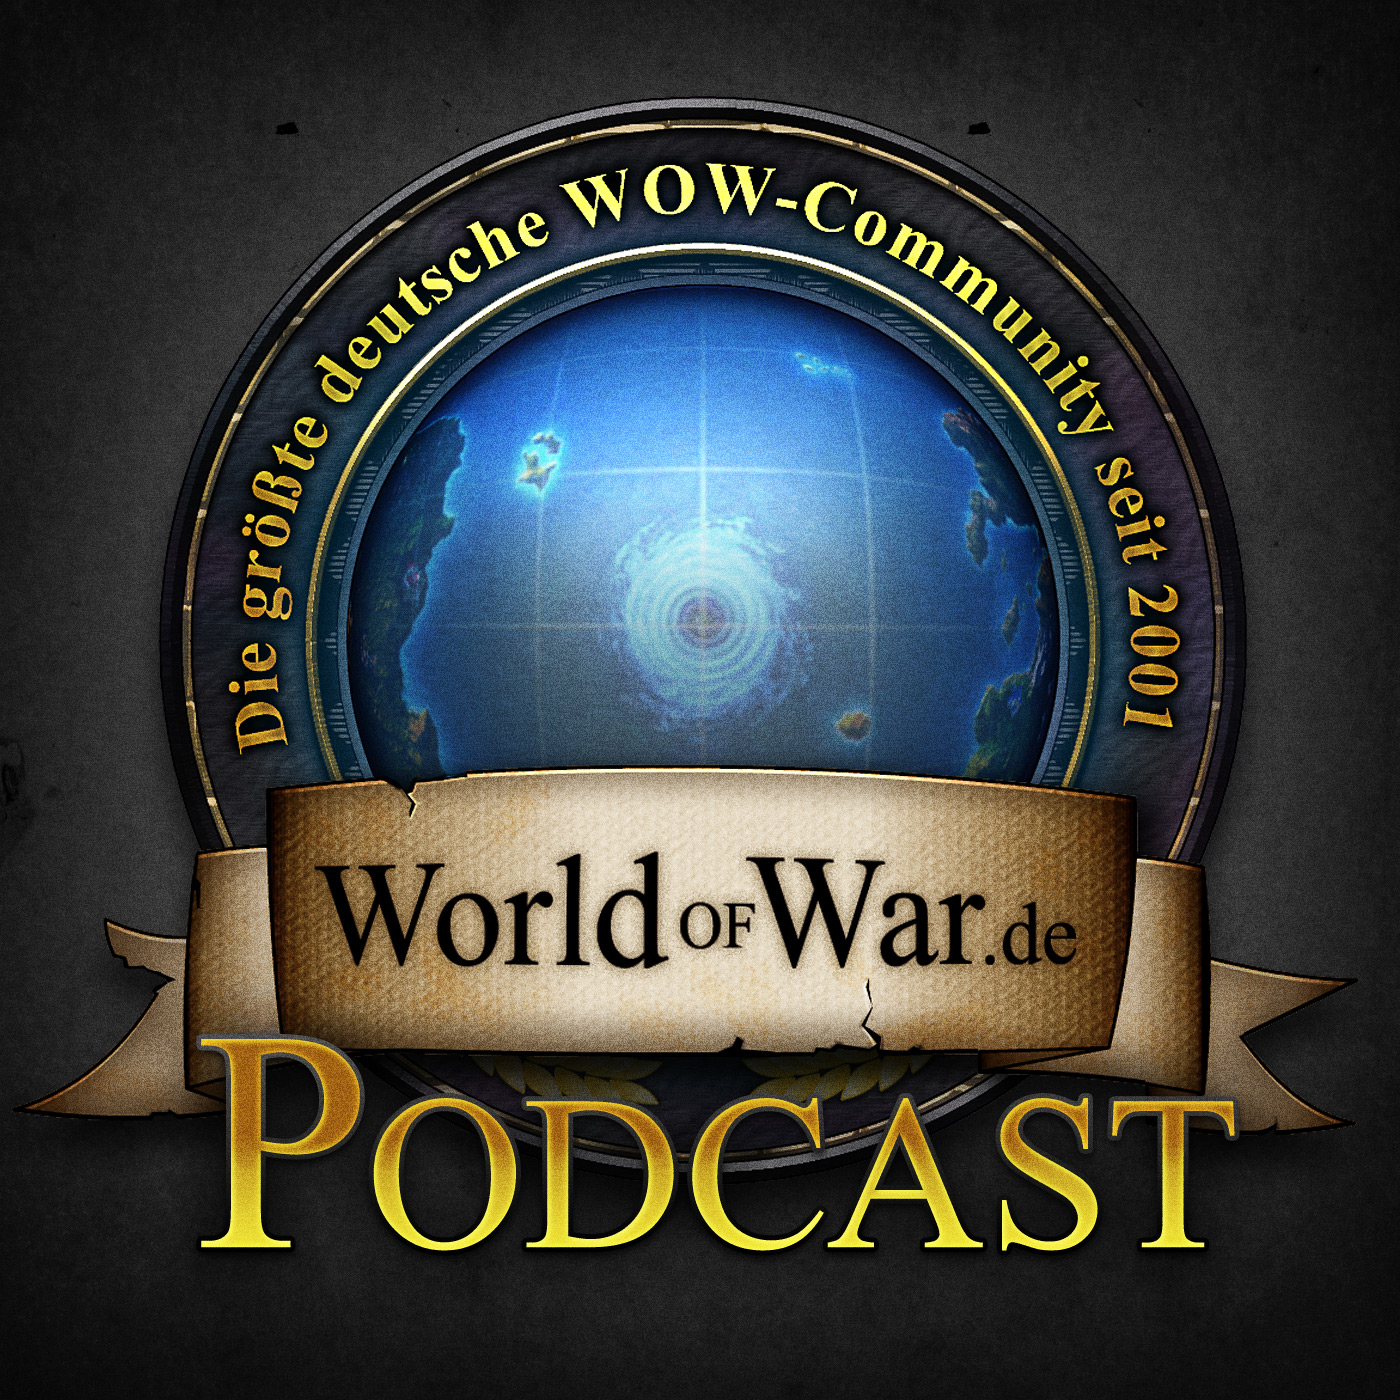 WorldofWar.de-Podcast - Der deutsche WoW-Cast